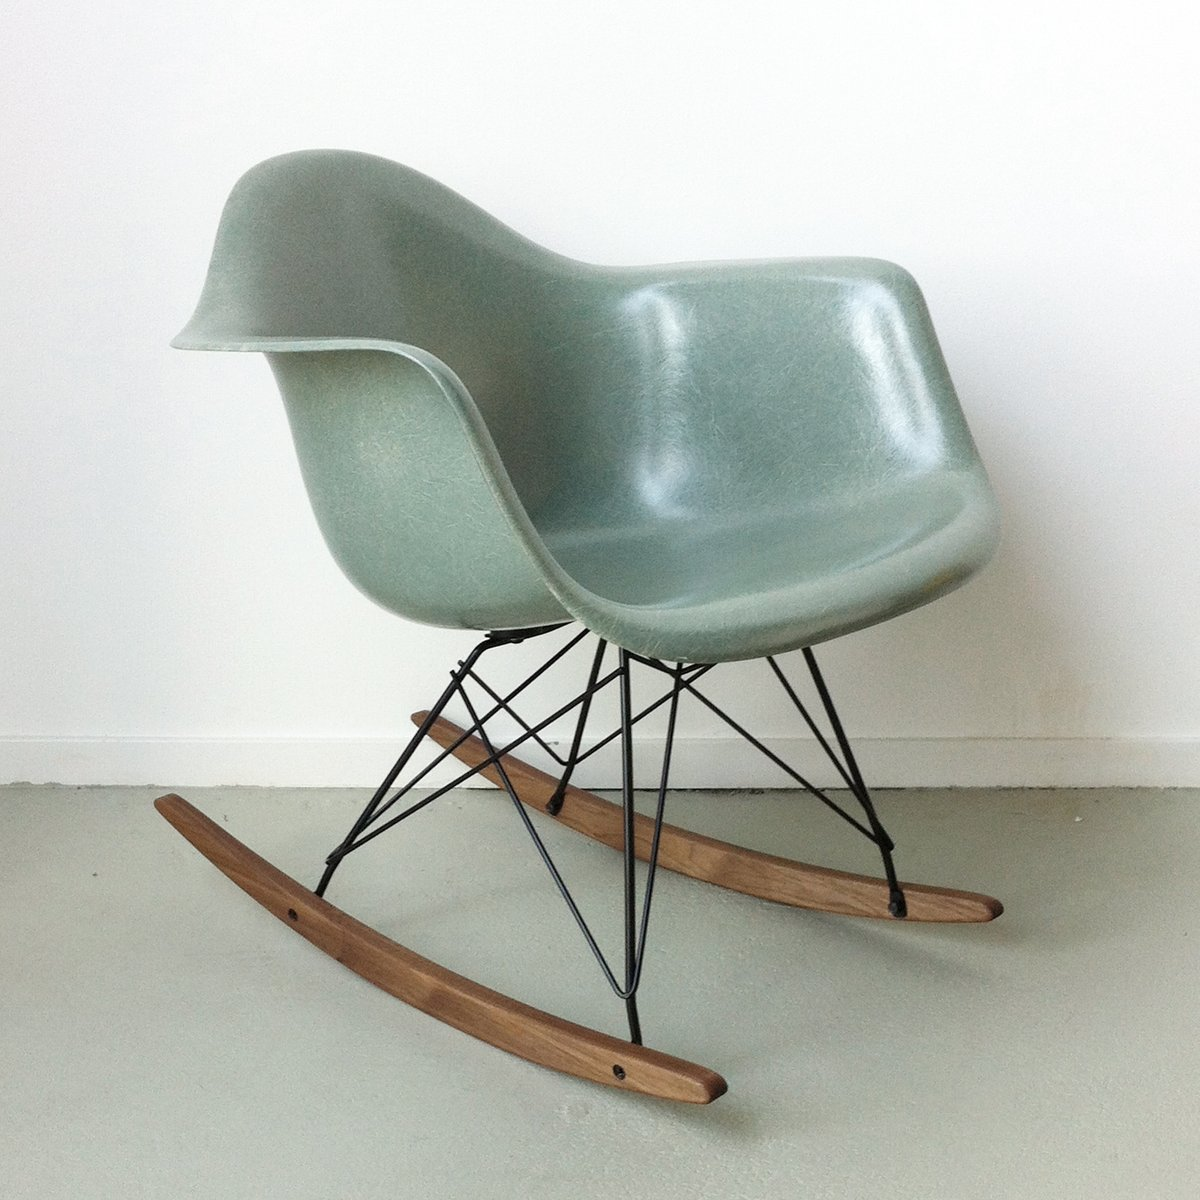 rar-chair-by-charles-ray-eames-for-herma